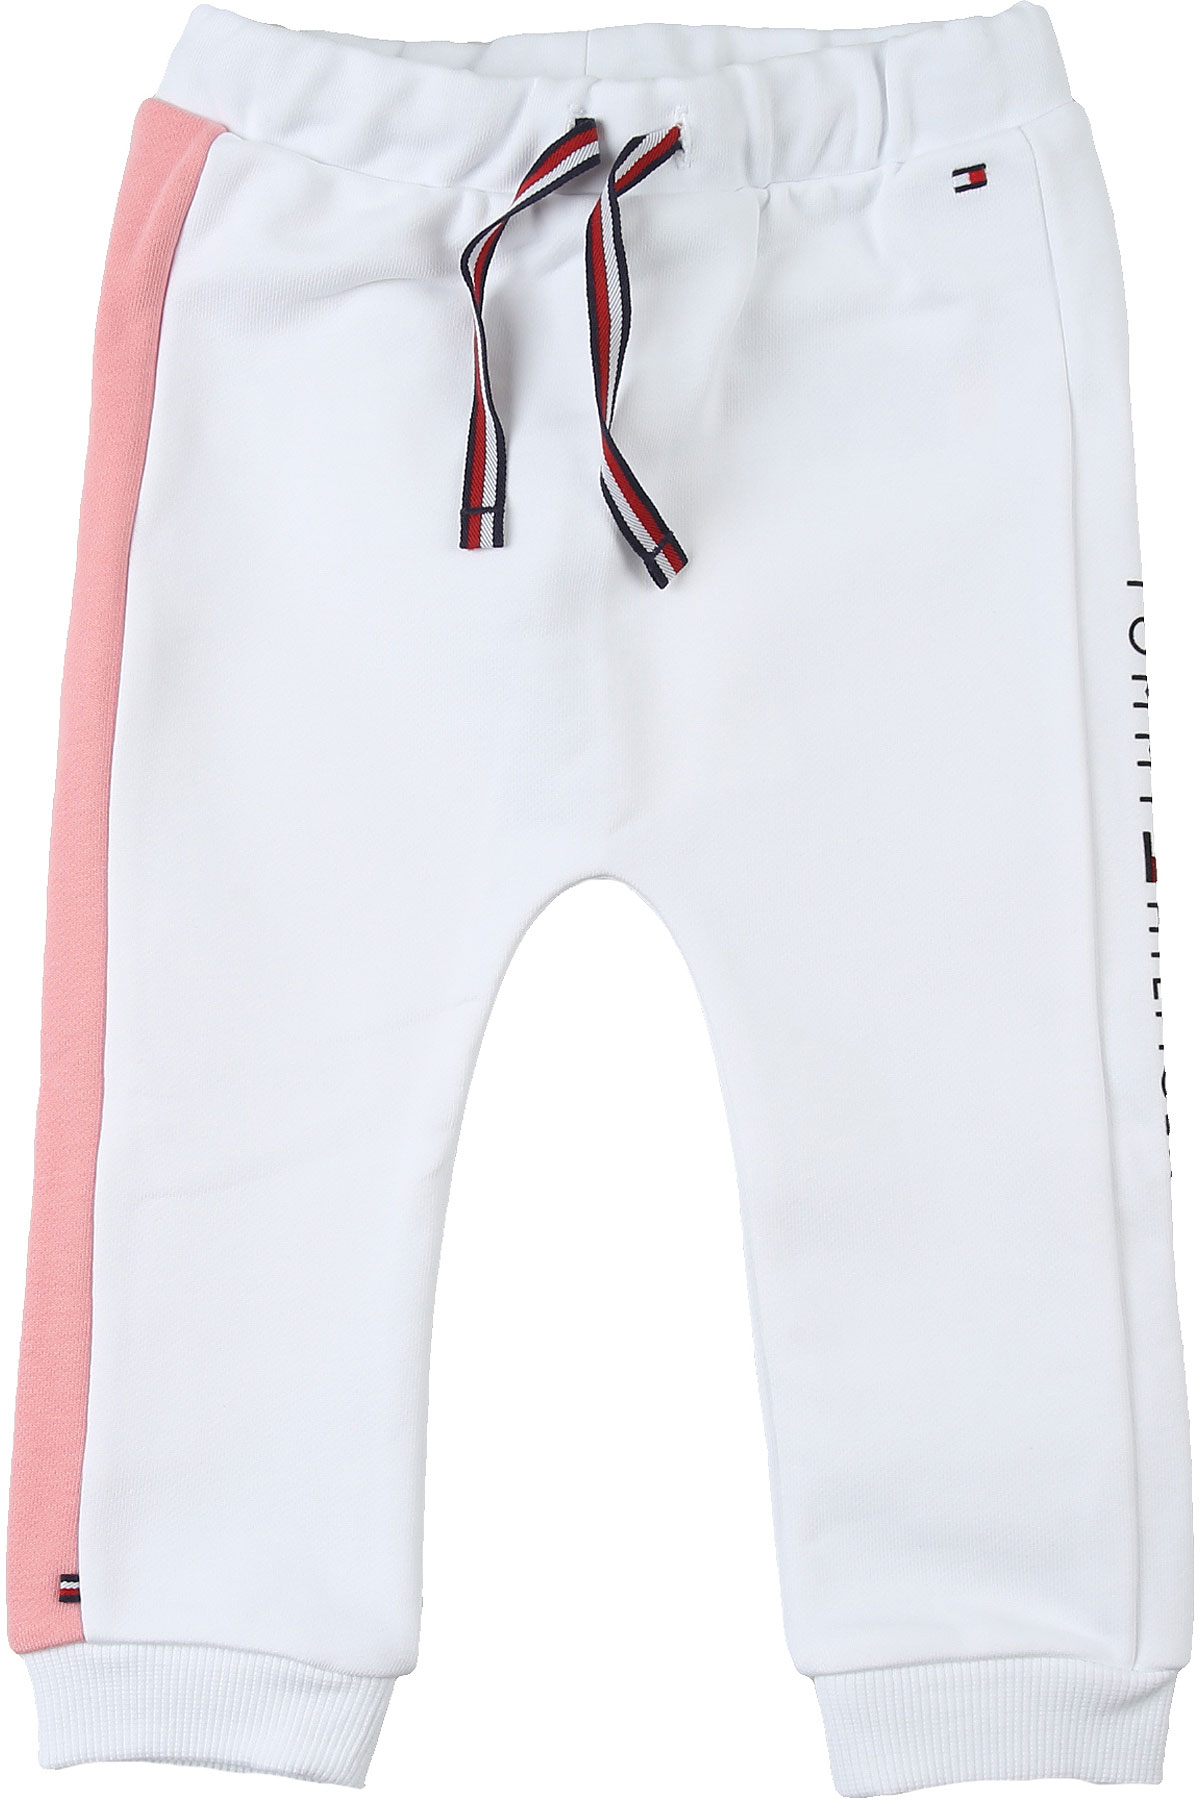 Tommy Hilfiger Baby Sweatpants for Girls On Sale, White, Cotton, 2019, 3Y 6M 9M